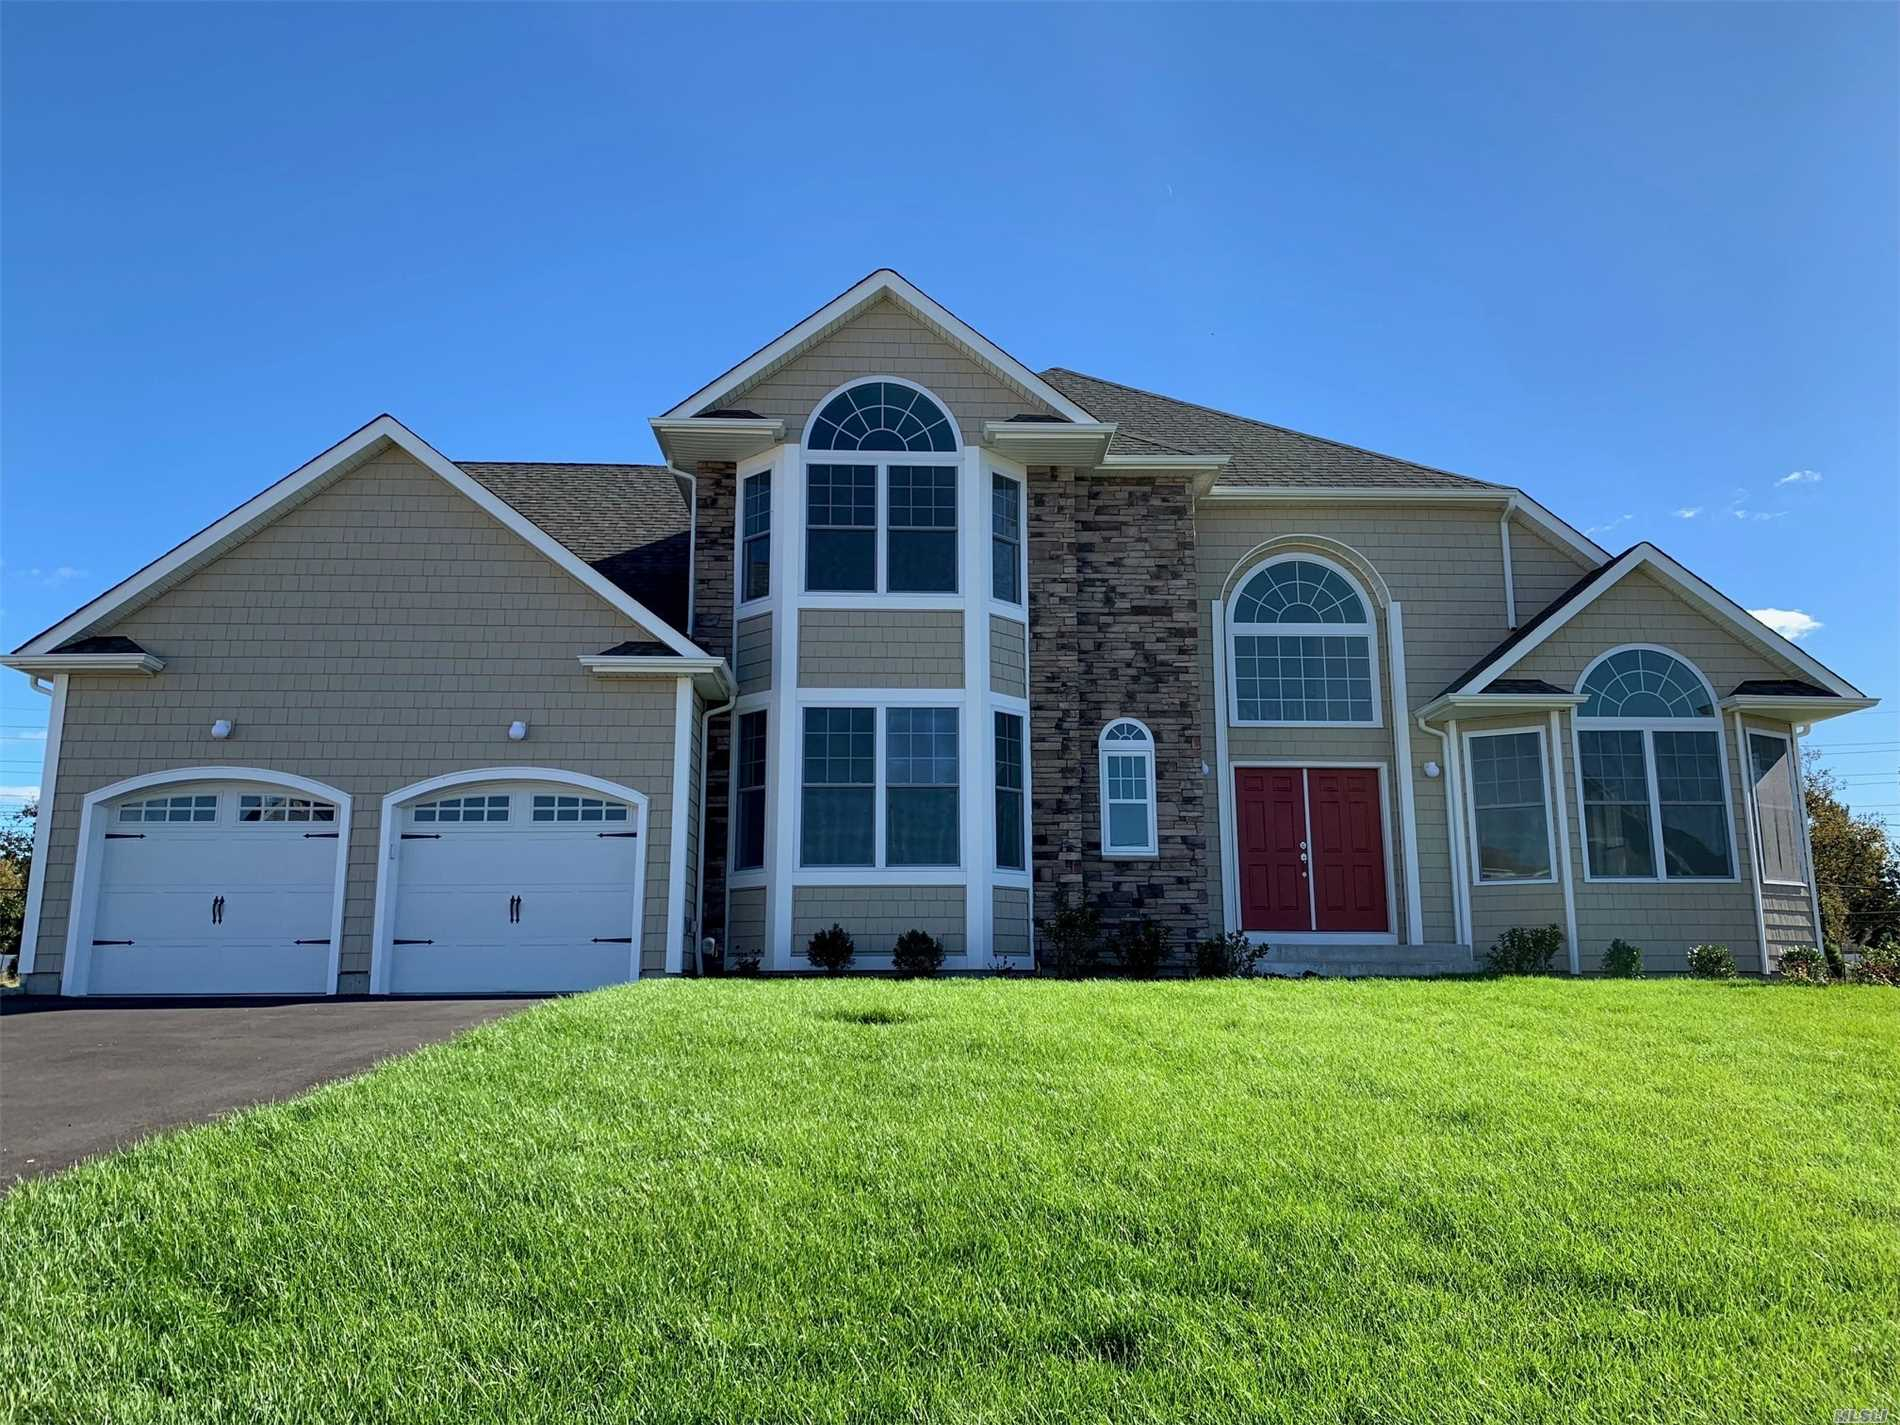 21 Country View Ln - Greenlawn, New York